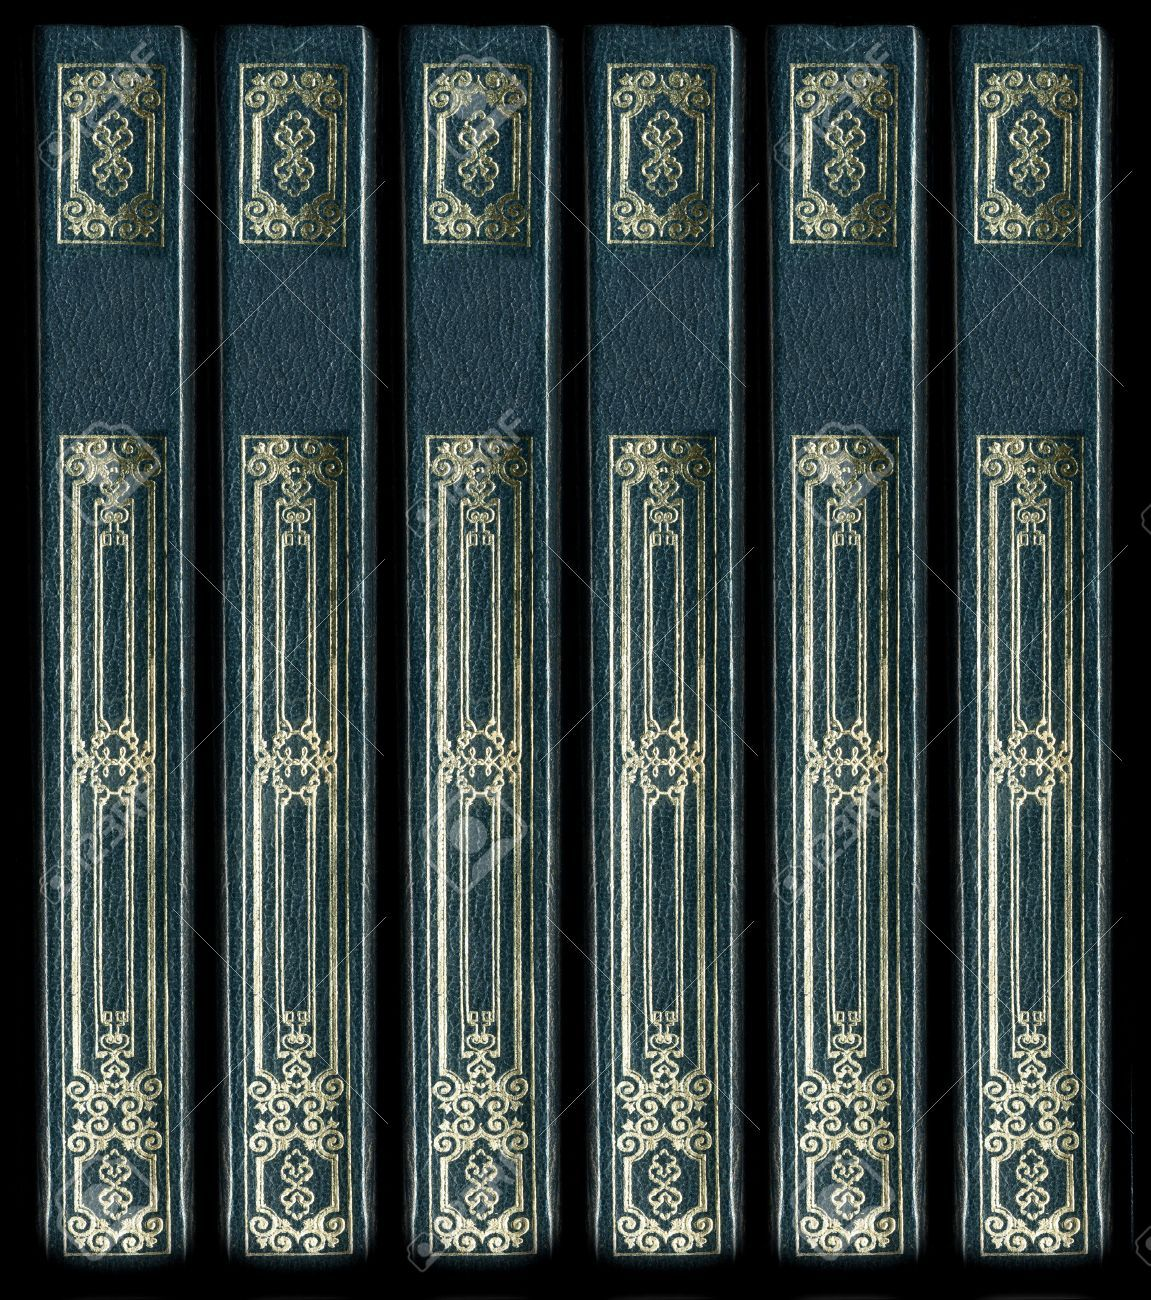 2190939-old-vintage-leather-book-spines-with-gold ...